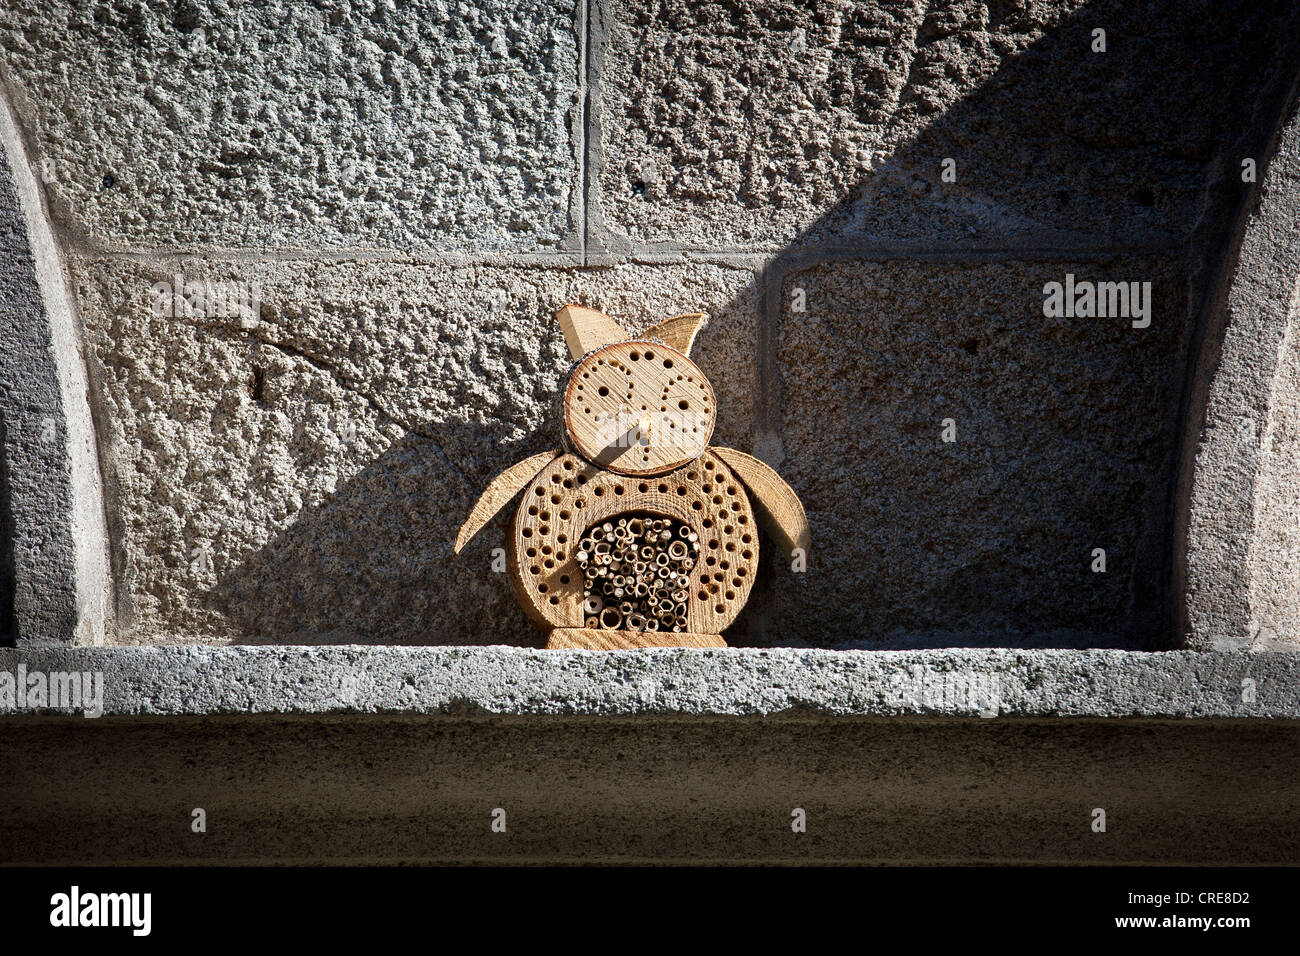 An owl-shaped insect house or nesting aid for wild bees and other insects. - Stock Image